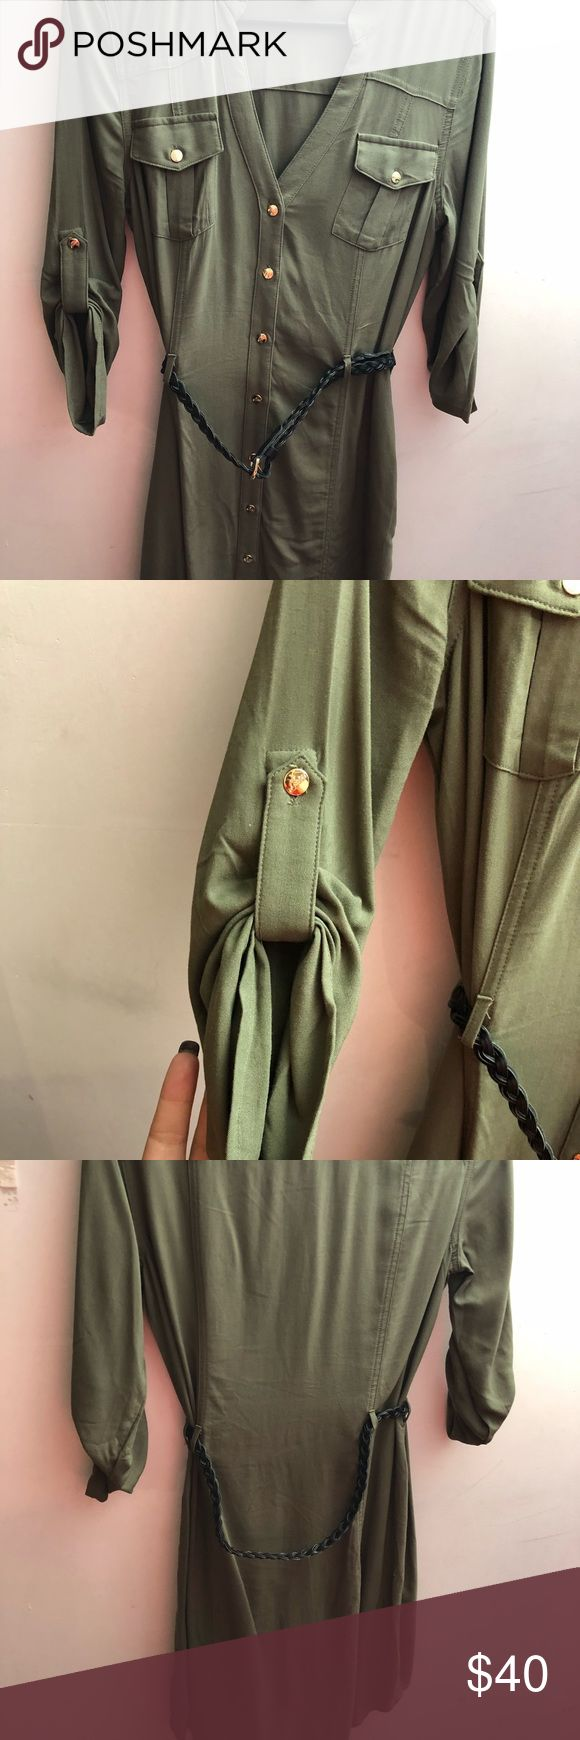 Button down guess dress with belt Really cute silk like material with brown belt Worn once Olive green color Guess Dresses Midi